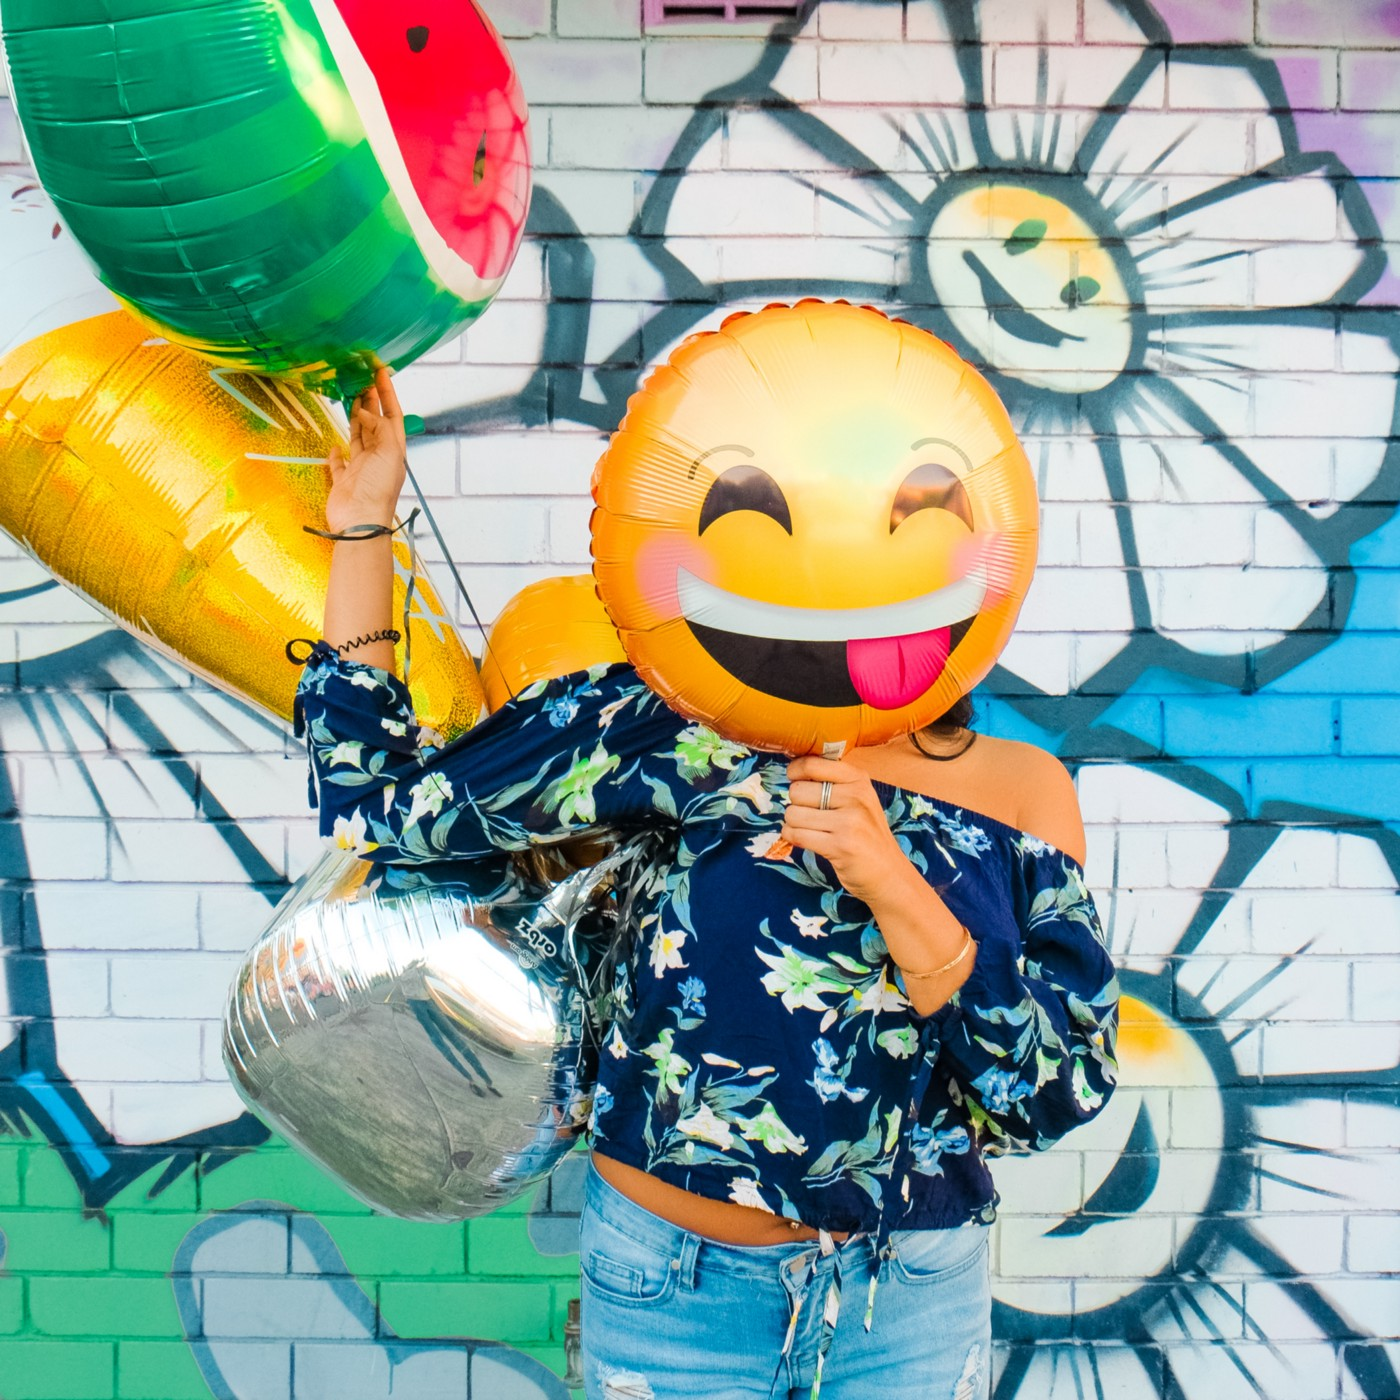 A girl with a smiley balloon covering her face